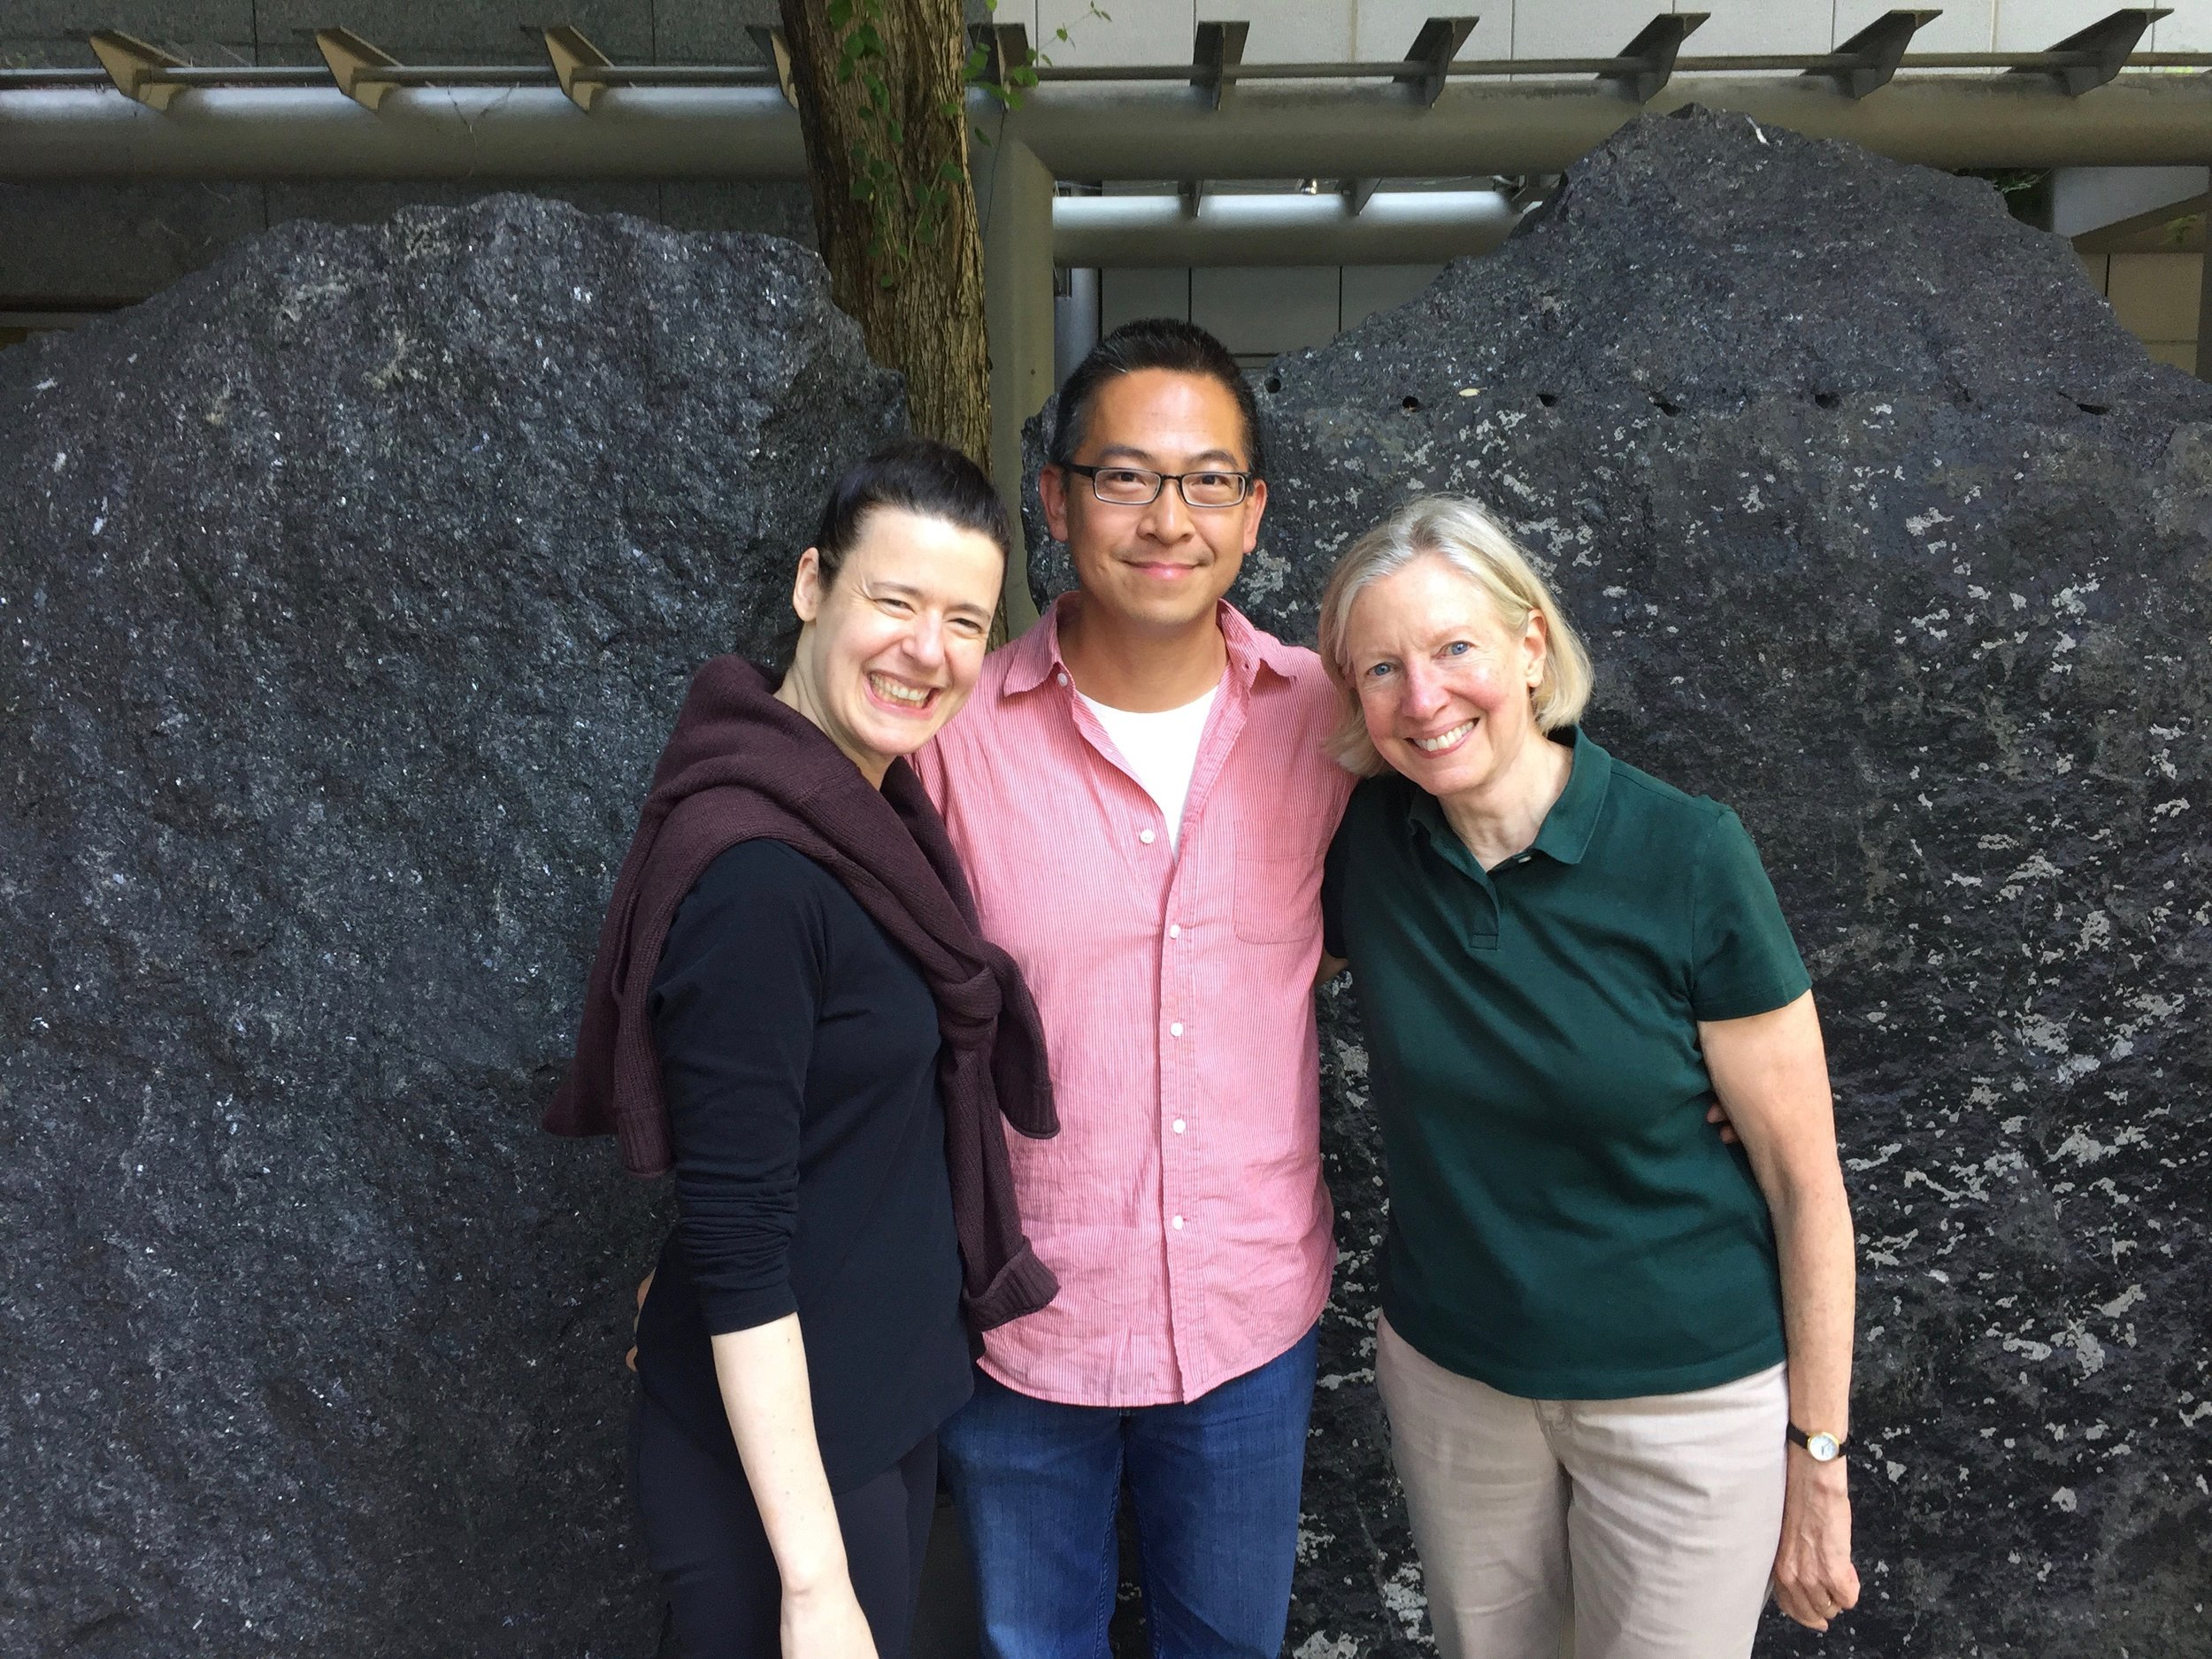 L to R: Melia Watras, Cuong Vu and producer Judith Sherman after the recording session for  Porch Music.   Photo by Michael Jinsoo Lim